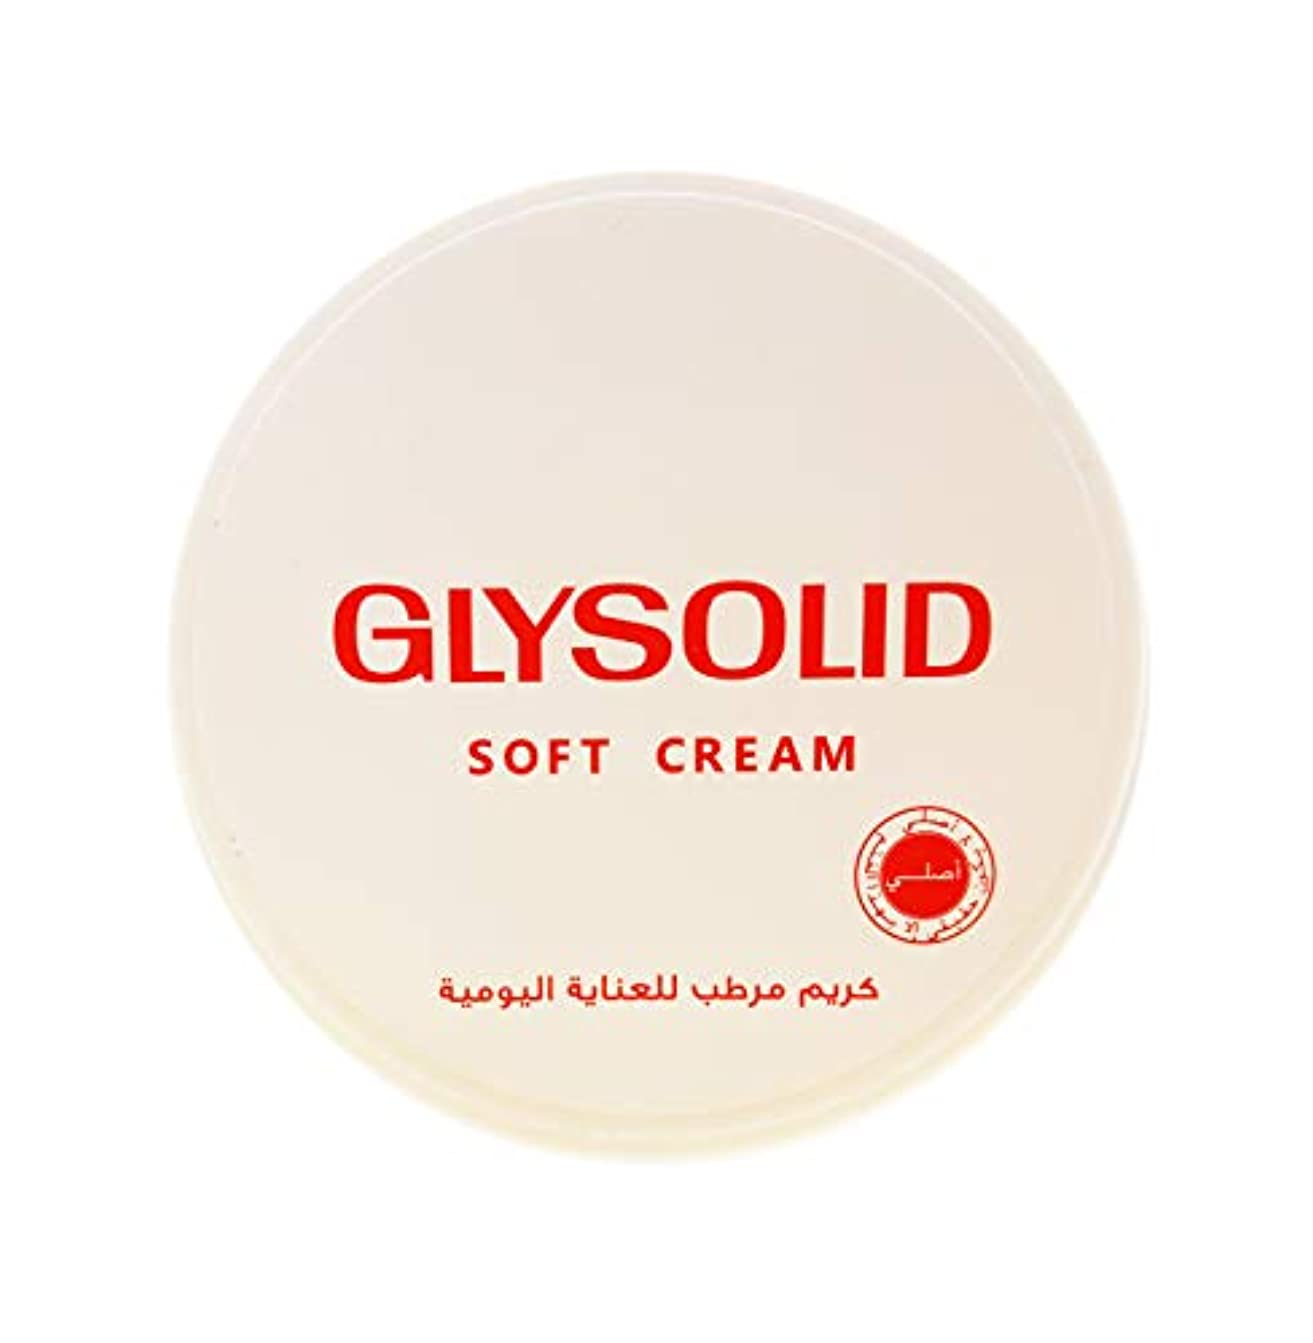 美人調和過去Glysolid Soft Cream Moisturizers For Dry Skin Face Hands Feet Elbow Body Softening With Glycerin Keeping Your...